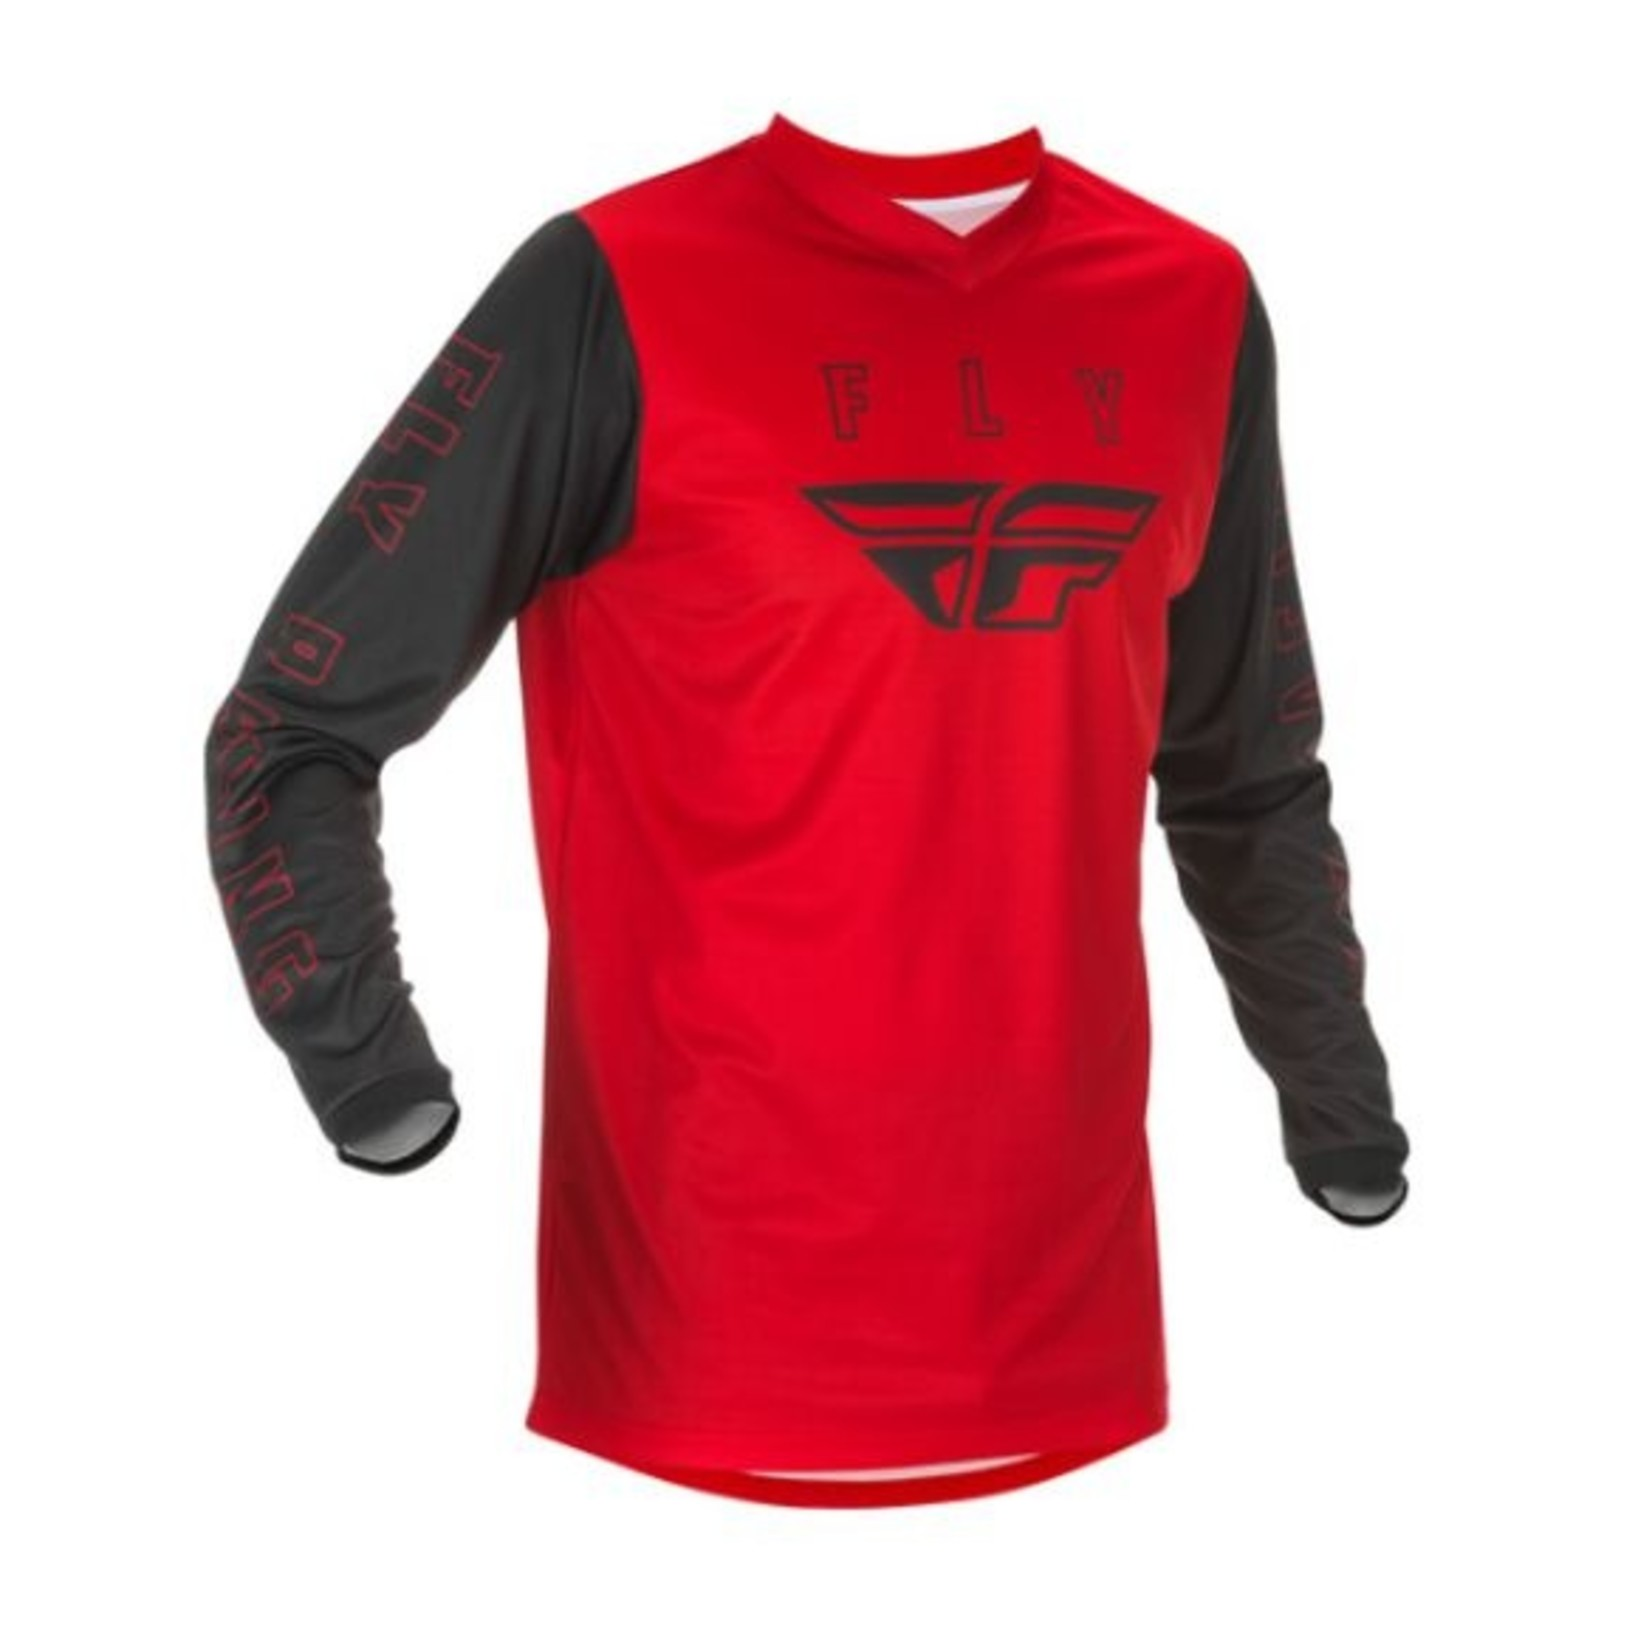 Fly Racing 2021 Fly F-16 Jersey Red/Black